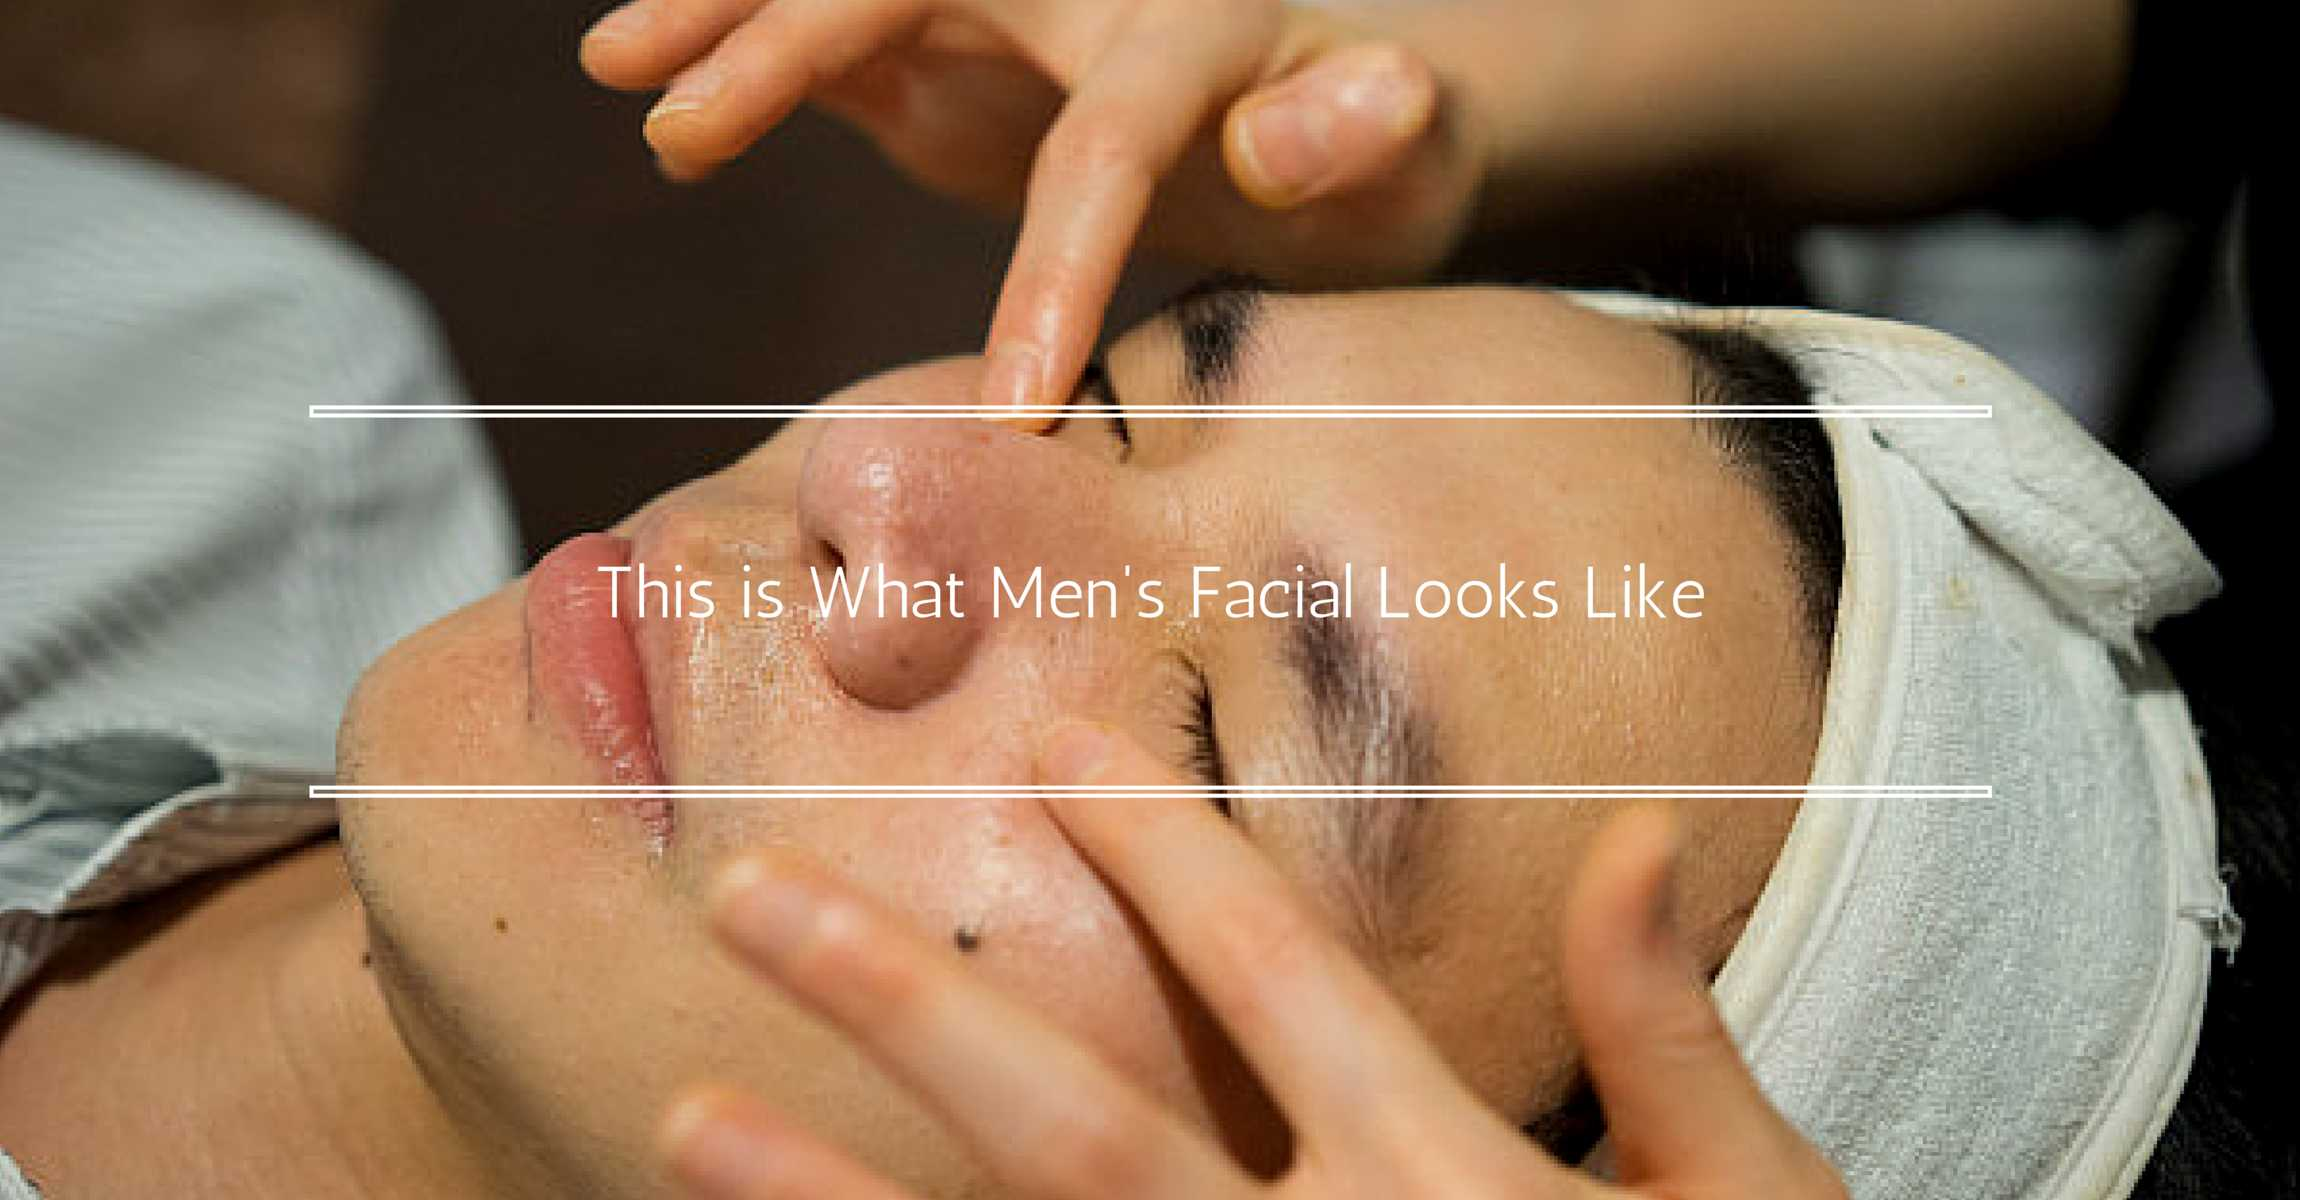 This is What Men's Facial Looks Like